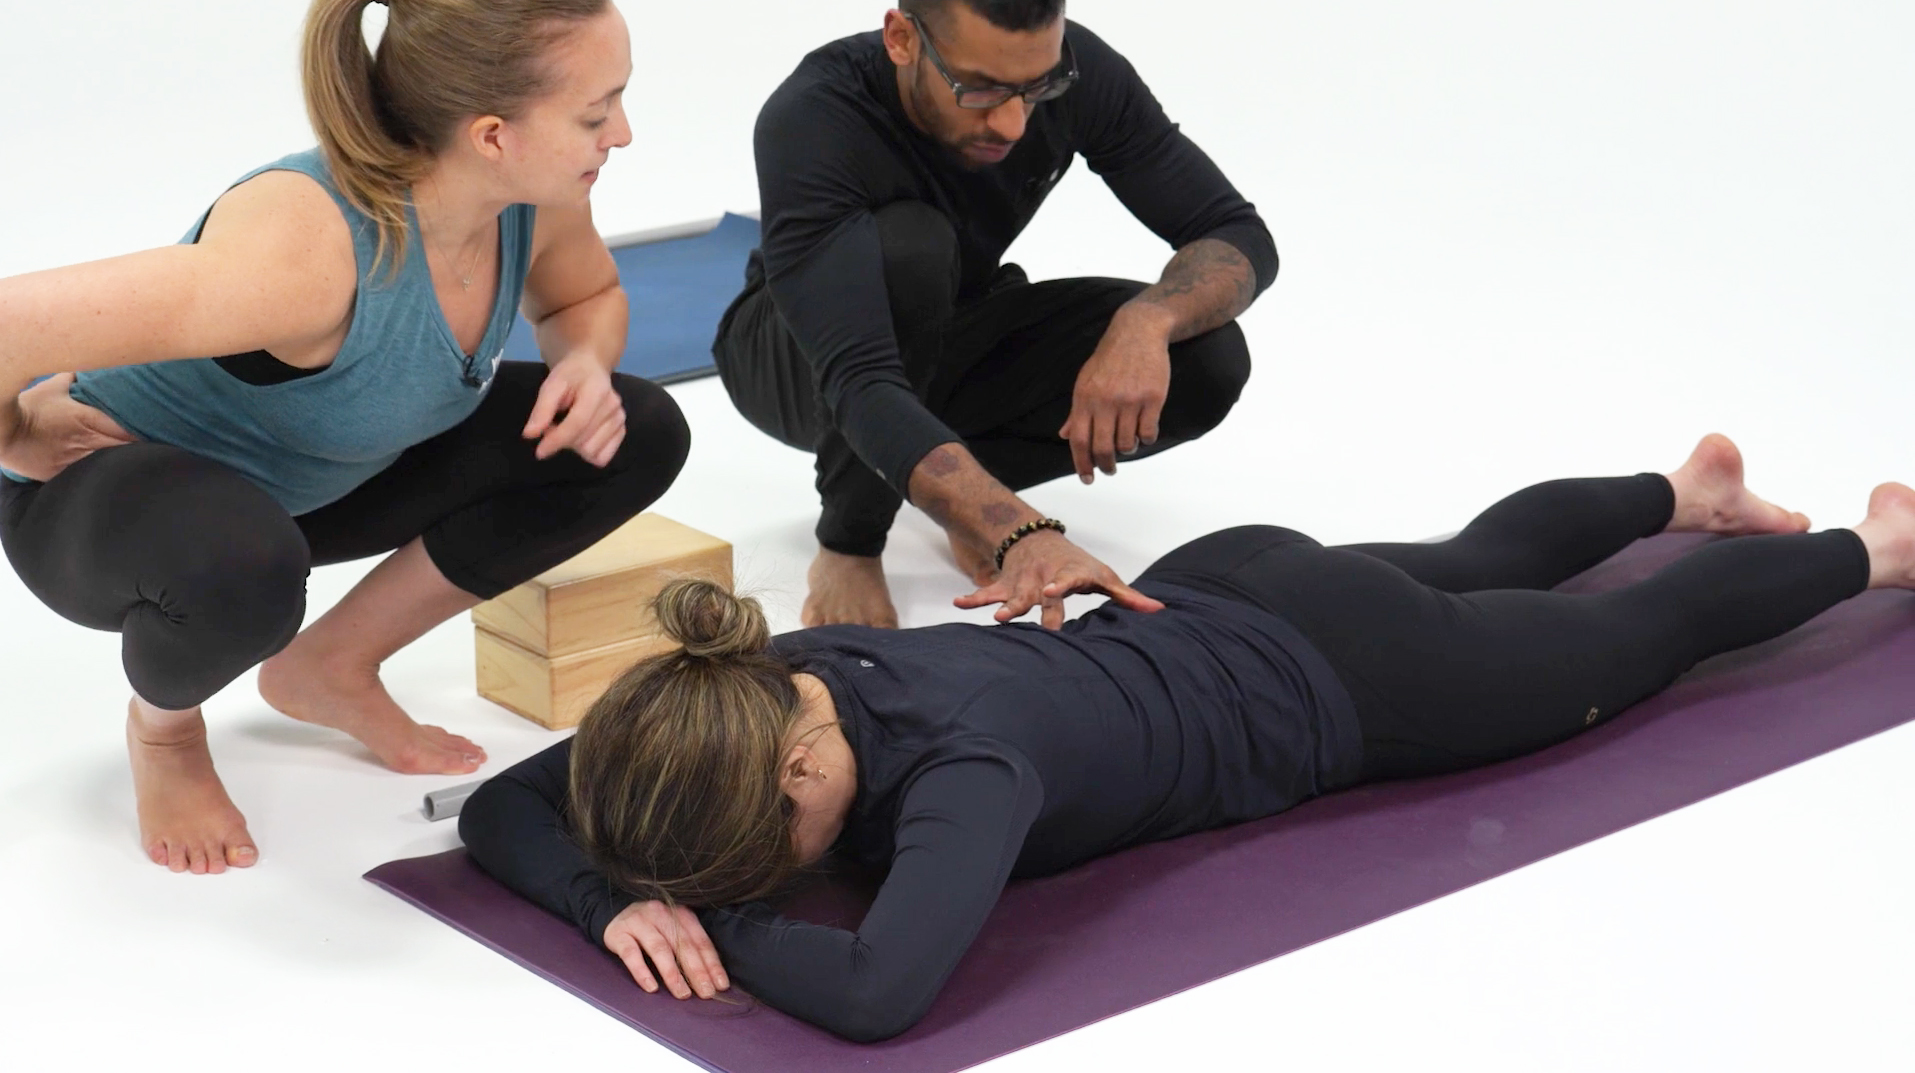 Screenshot of Cecily and person looking at someone's lumbar area while they lie prone